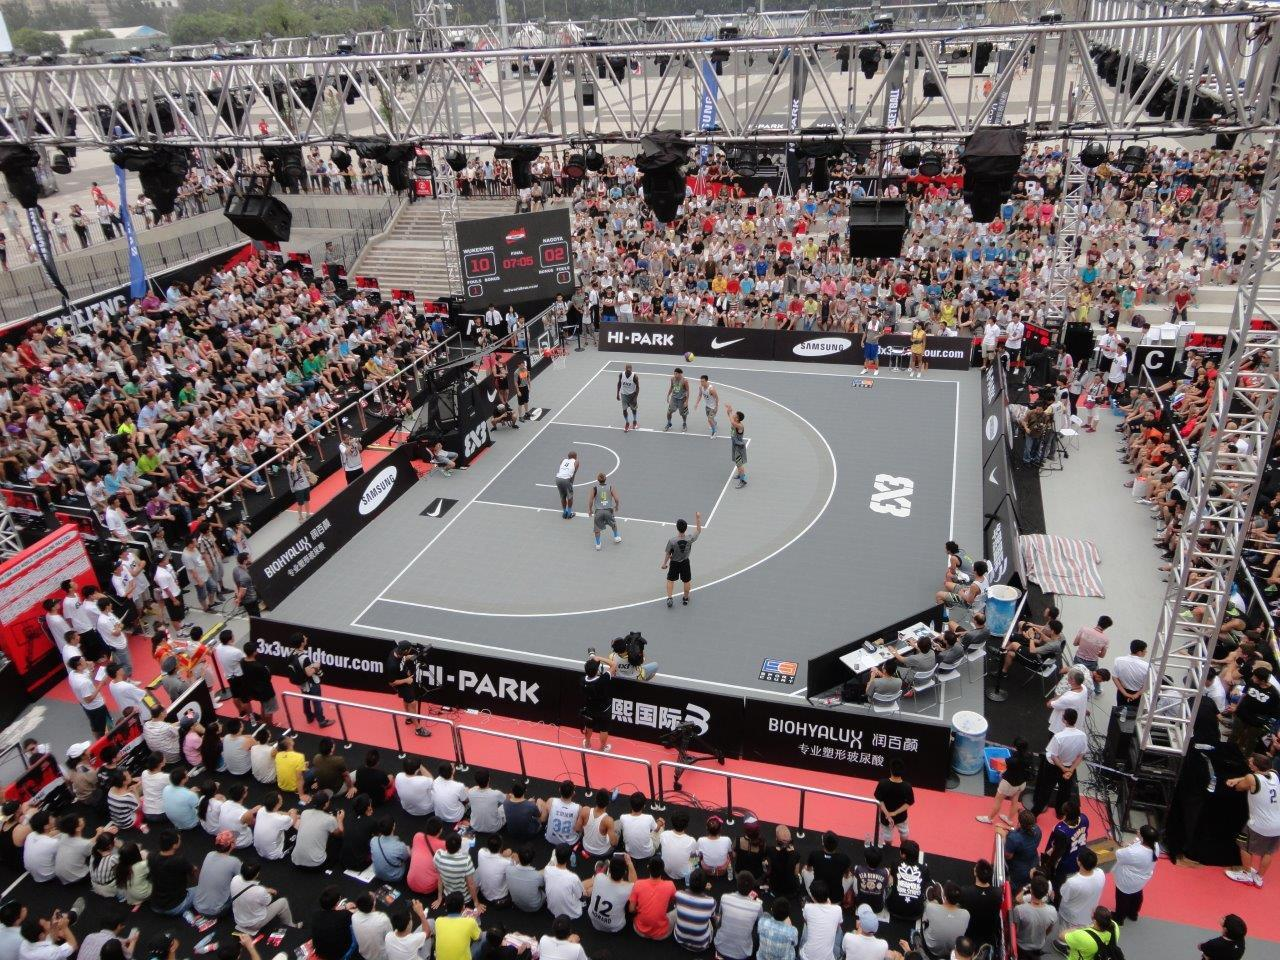 Outdoor Crowd in China to watch 3x3 Basketball on the Sport Court Basketball Court